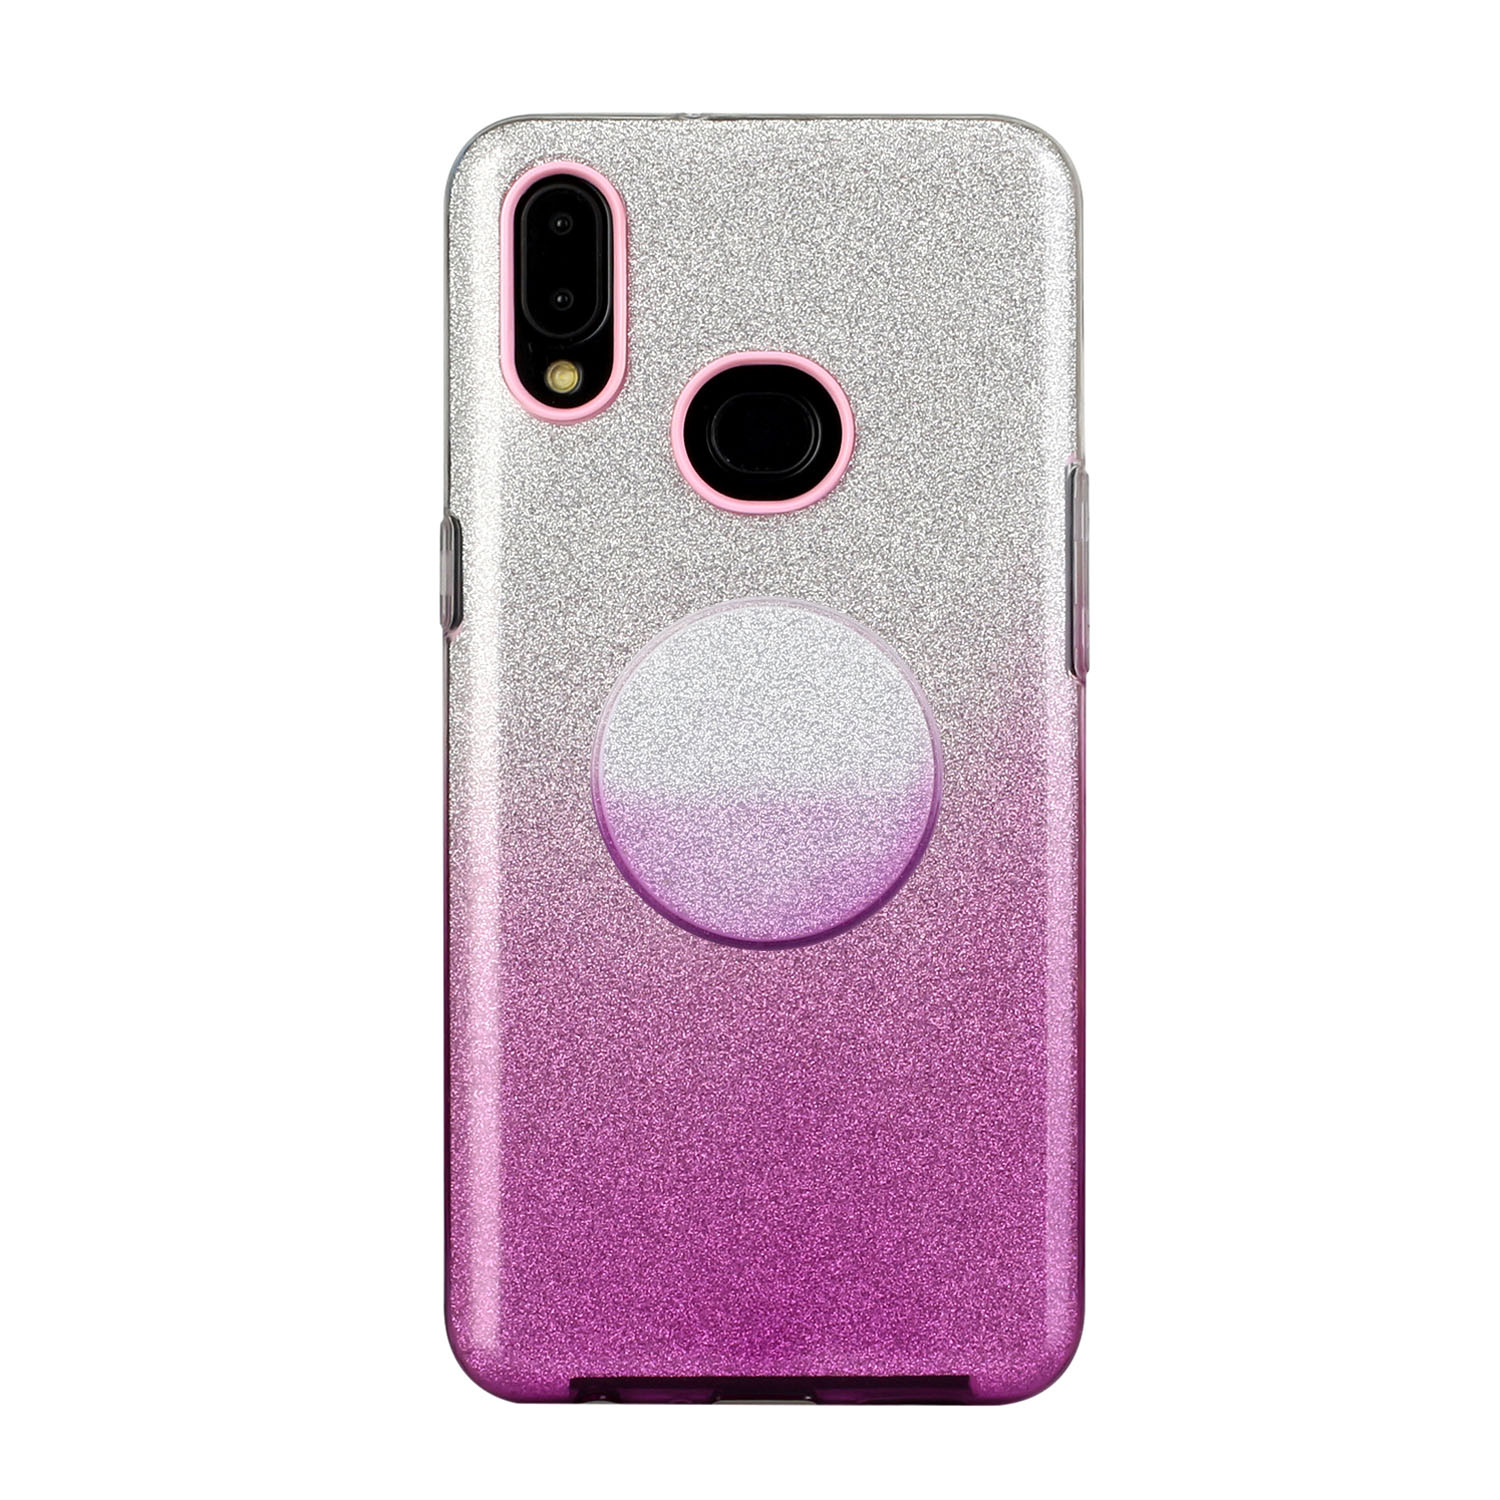 For Samsung A10/A50/A30S/A70/A20S Phone Case Gradient Color Glitter Powder Phone Cover with Airbag Bracket purple